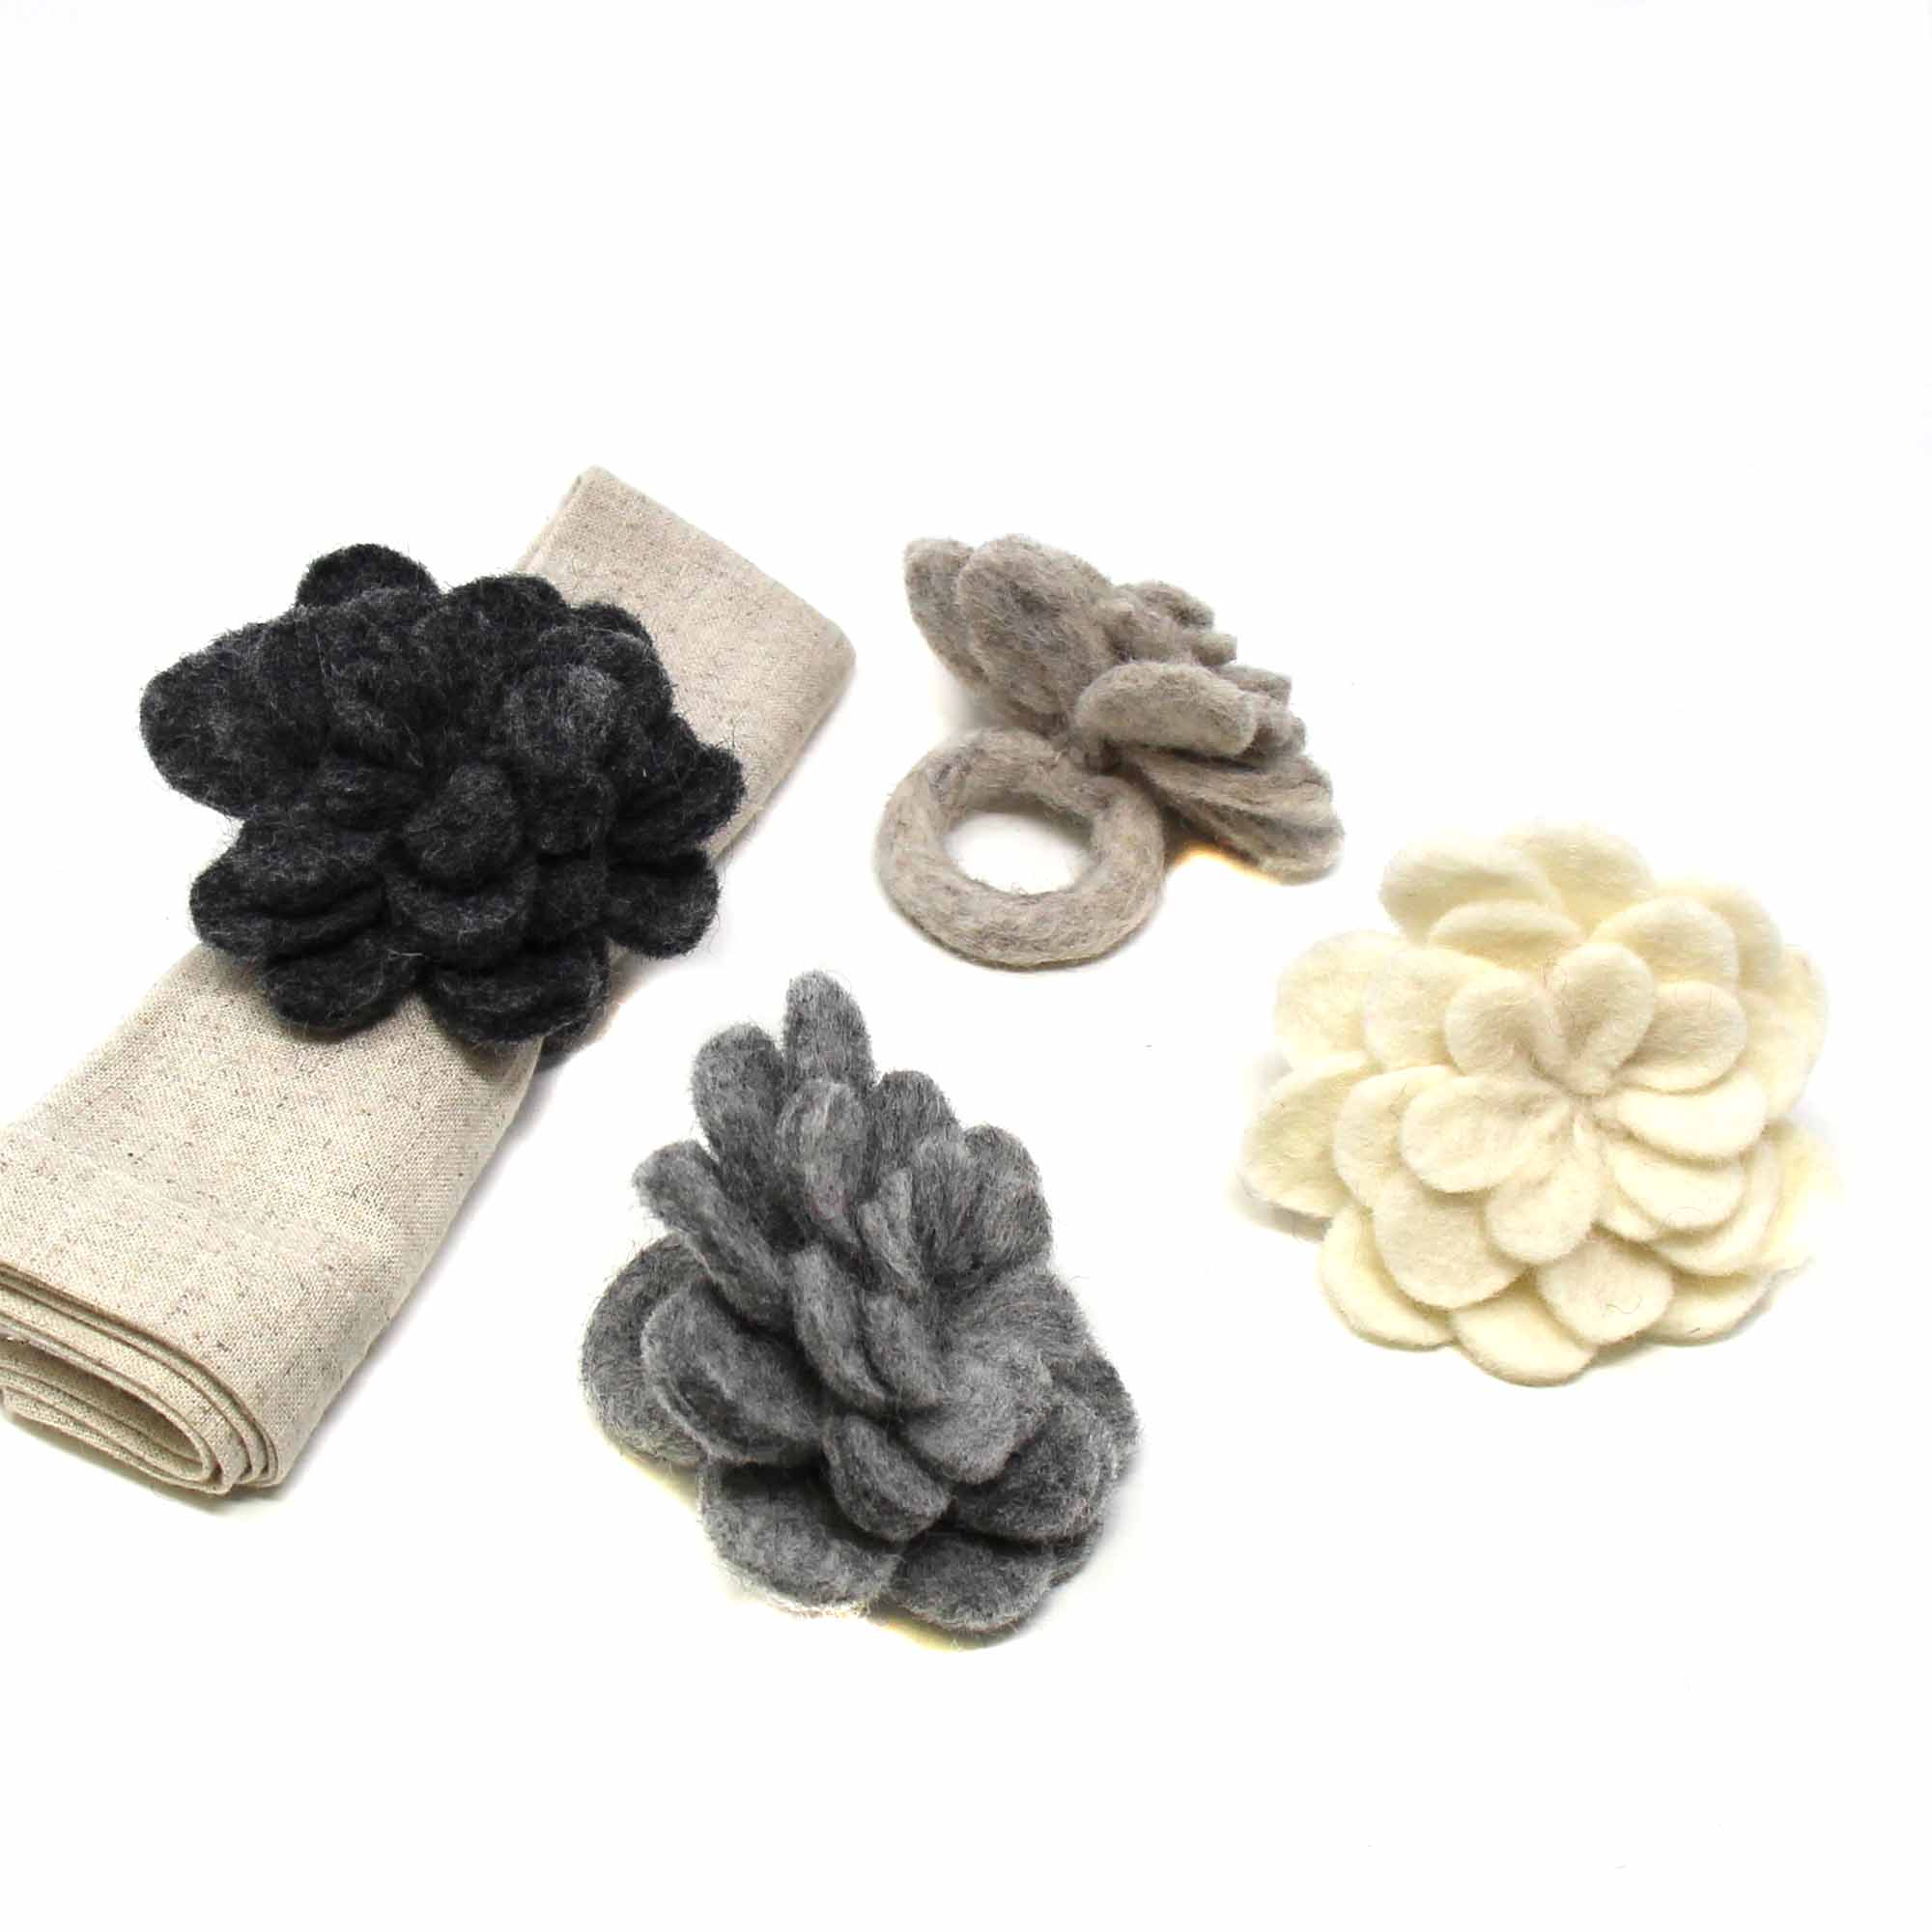 Neutral Zinnias Felt Napkin Rings Set Of 4 Global Crafts Wholesale